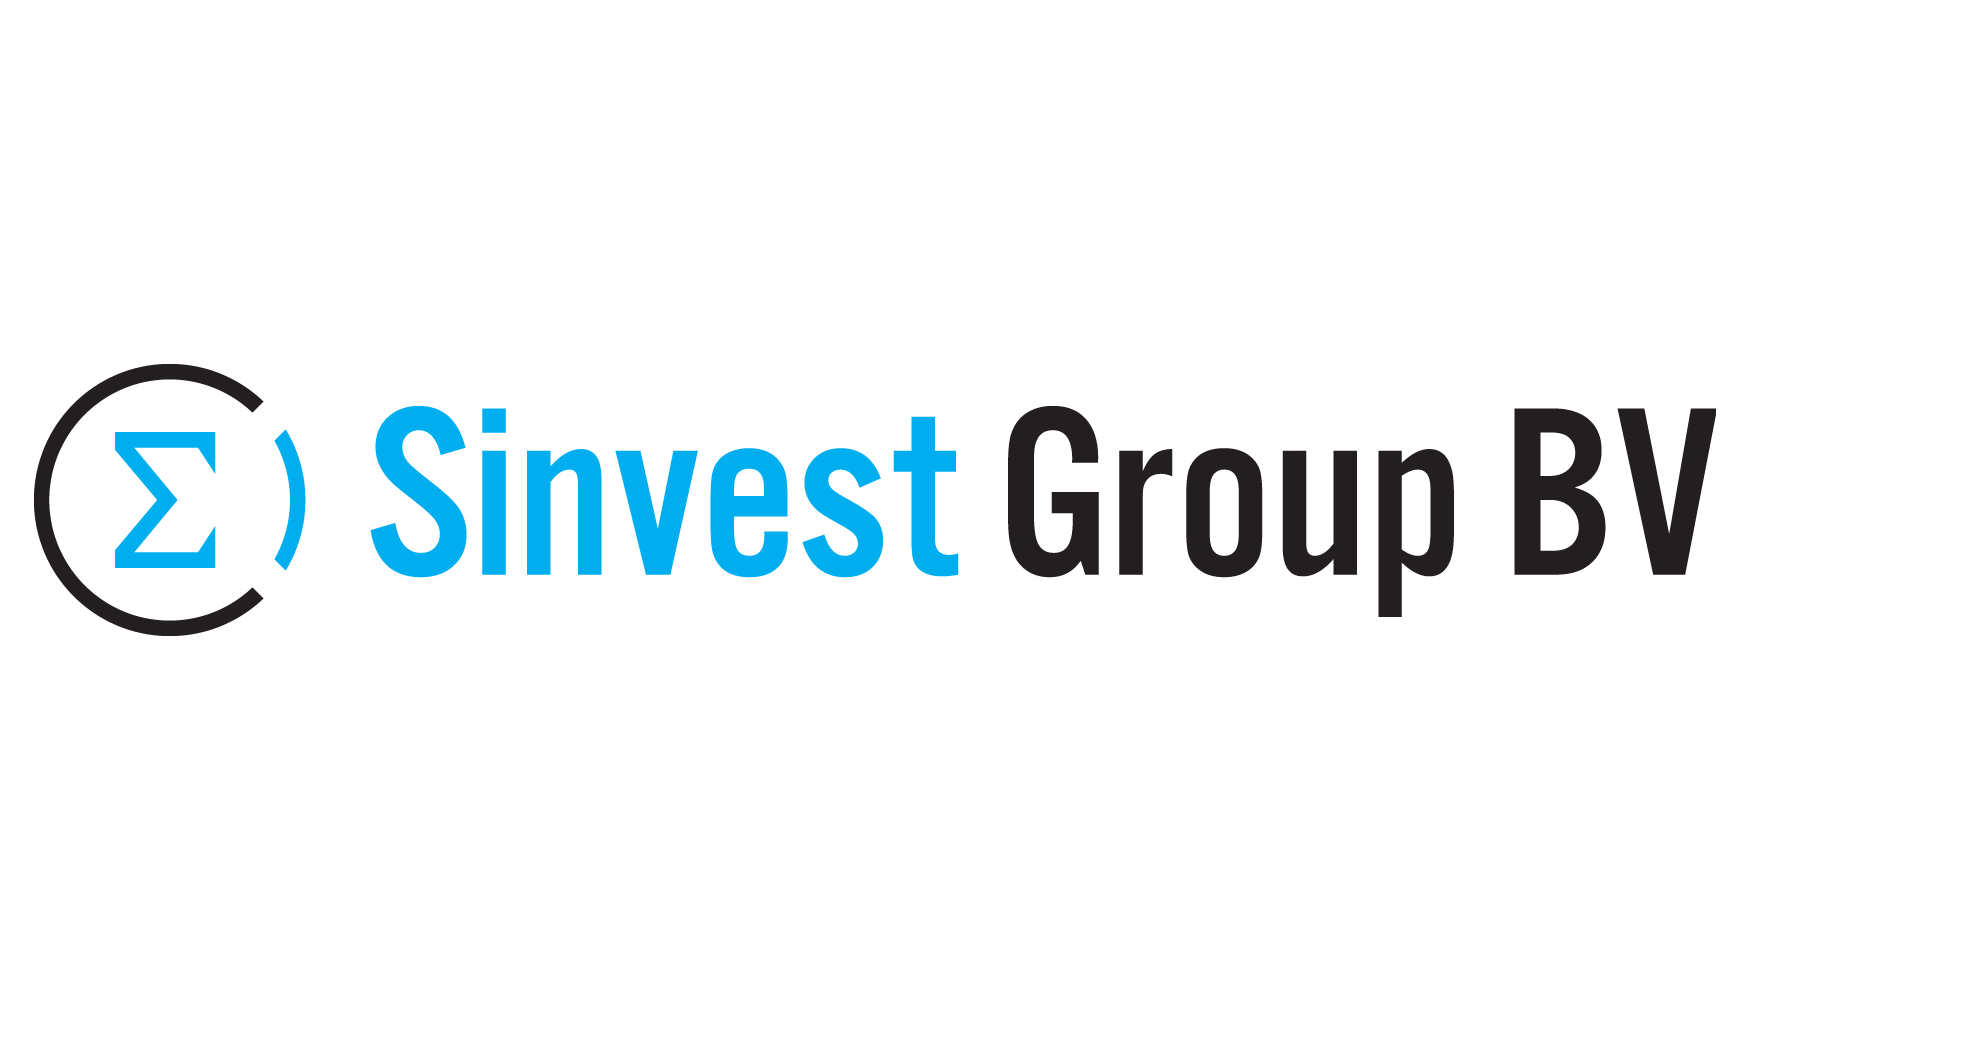 Sinvest Group B.V.